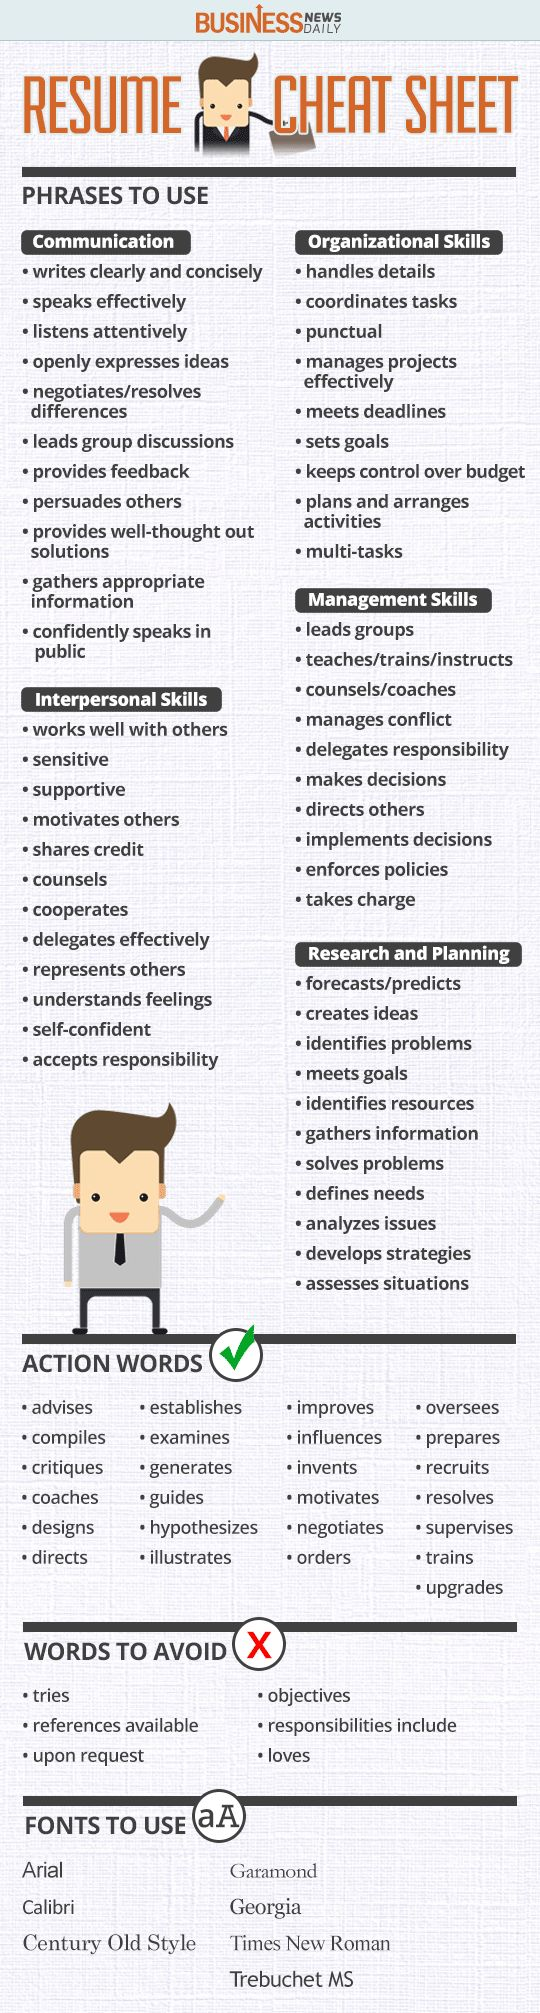 Opposenewapstandardsus  Gorgeous  Ideas About Resume On Pinterest  Cv Format Resume Cv And  With Interesting Resume Cheat Sheet Infographic Andrews Almost Done With A Complete Unit On Employment Which With Cool Chiropractic Resume Also General Labor Resume Objective In Addition Geology Resume And Wealth Management Resume As Well As Multiple Positions Same Company Resume Additionally Technical Writing Resume From Pinterestcom With Opposenewapstandardsus  Interesting  Ideas About Resume On Pinterest  Cv Format Resume Cv And  With Cool Resume Cheat Sheet Infographic Andrews Almost Done With A Complete Unit On Employment Which And Gorgeous Chiropractic Resume Also General Labor Resume Objective In Addition Geology Resume From Pinterestcom